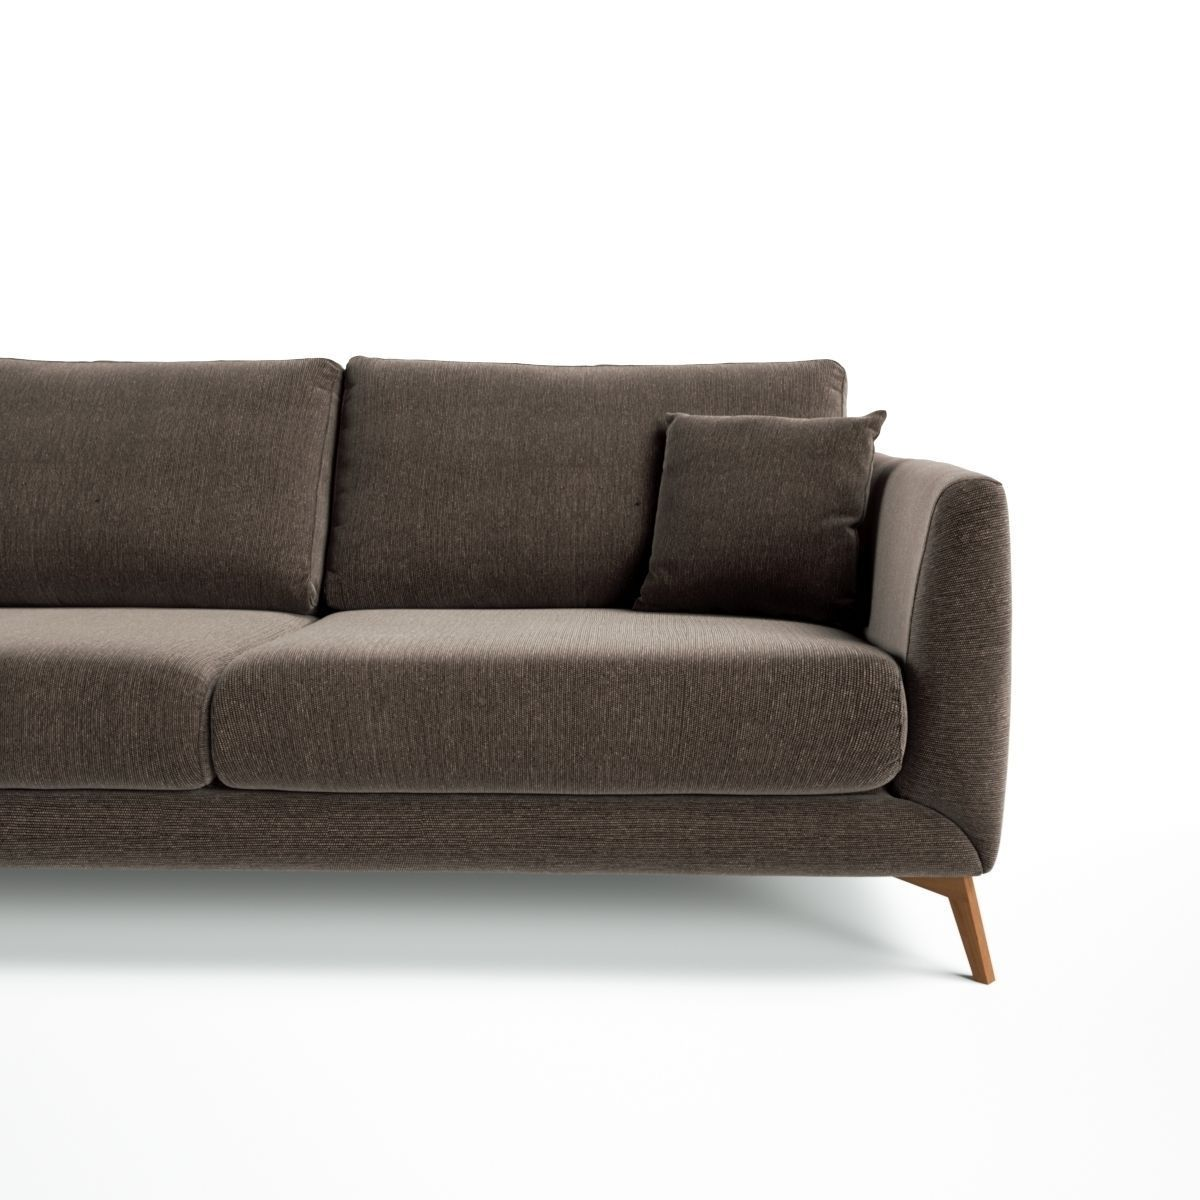 Boconcept fargo sofa 3d model max for Bo concept